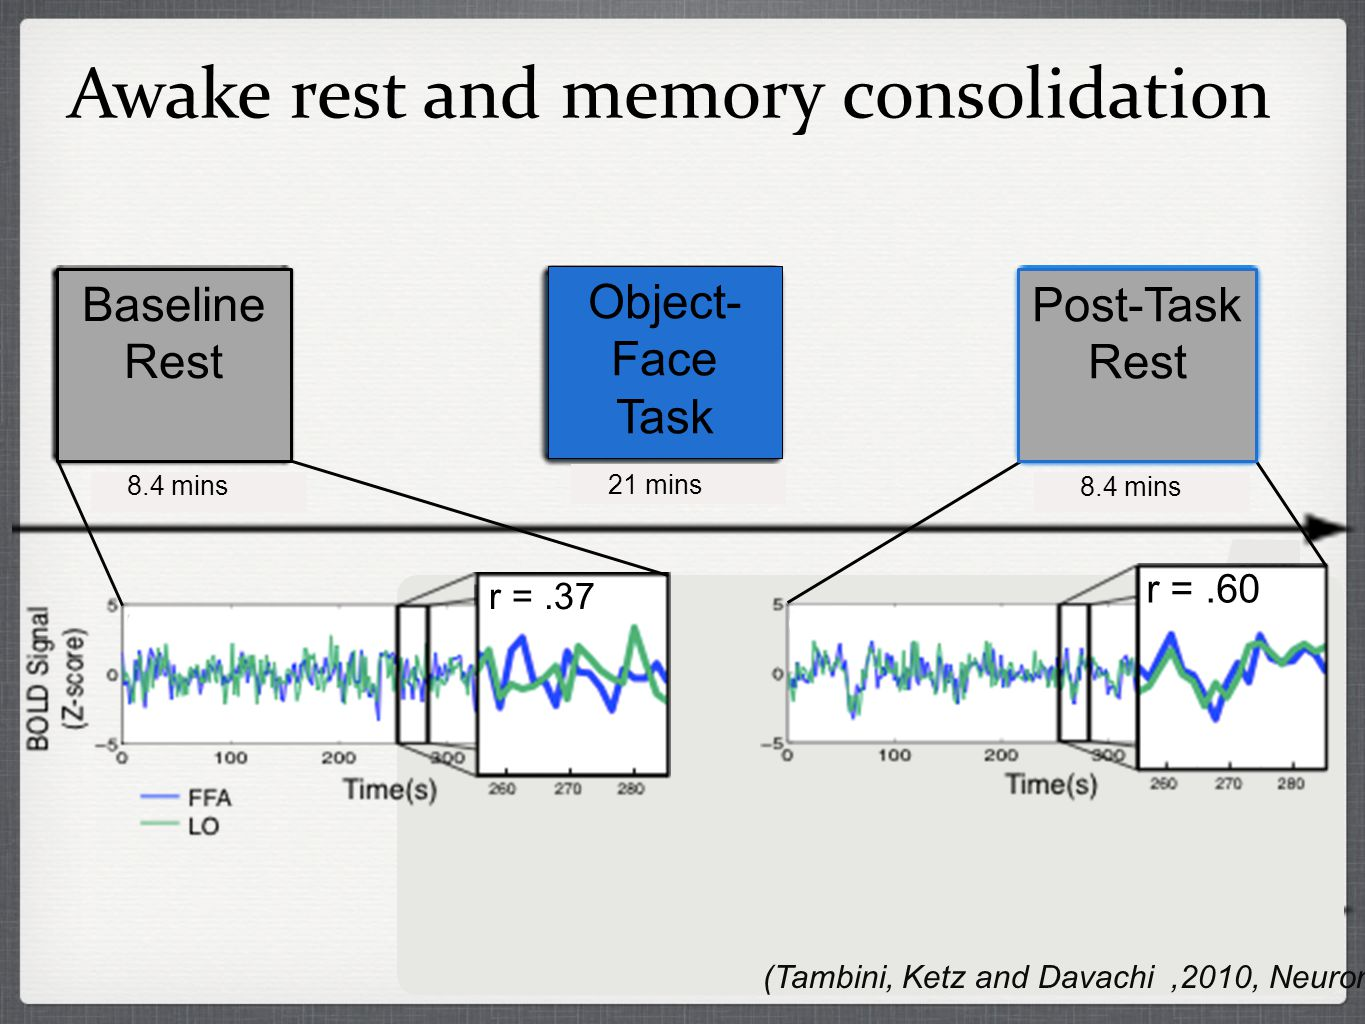 r =.37 r =.60 r =.37 Awake rest and memory consolidation (Tambini, Ketz and Davachi,2010, Neuron) Baseline Rest Post-Task Rest Object- Face Task 8.4 mins 21 mins